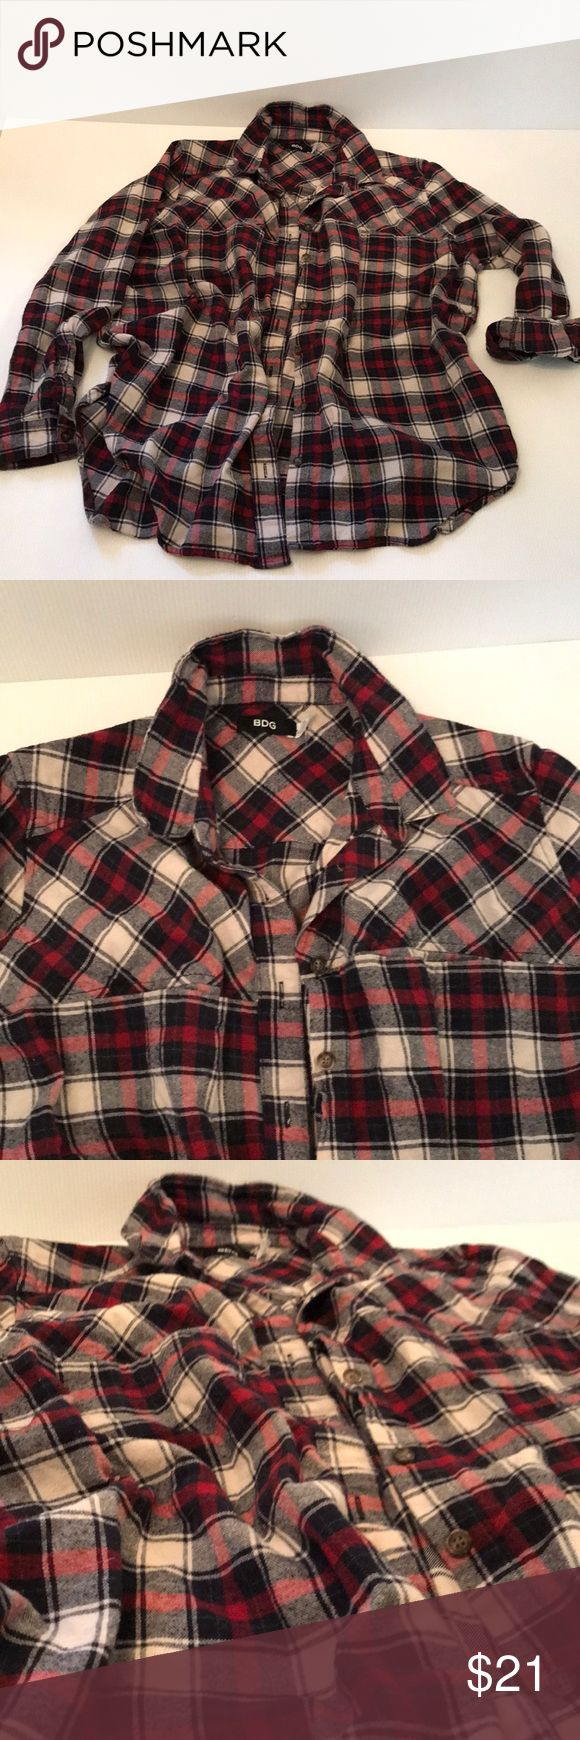 Petite flannel pockets into